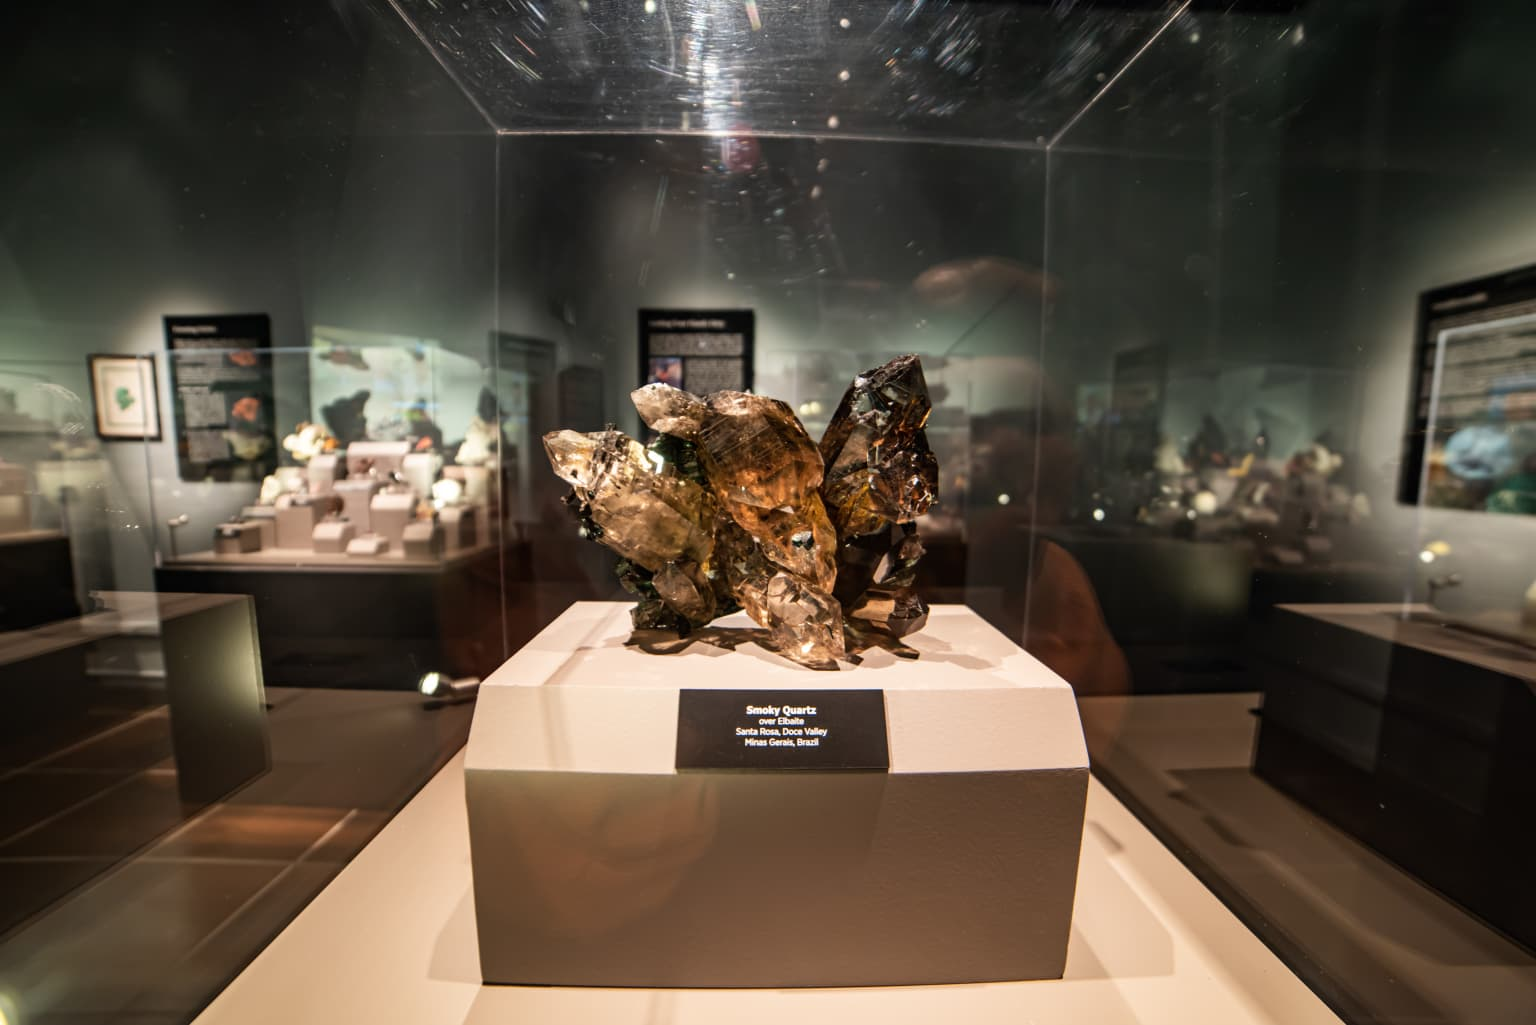 Spann Collection at the Tellus Science Museum